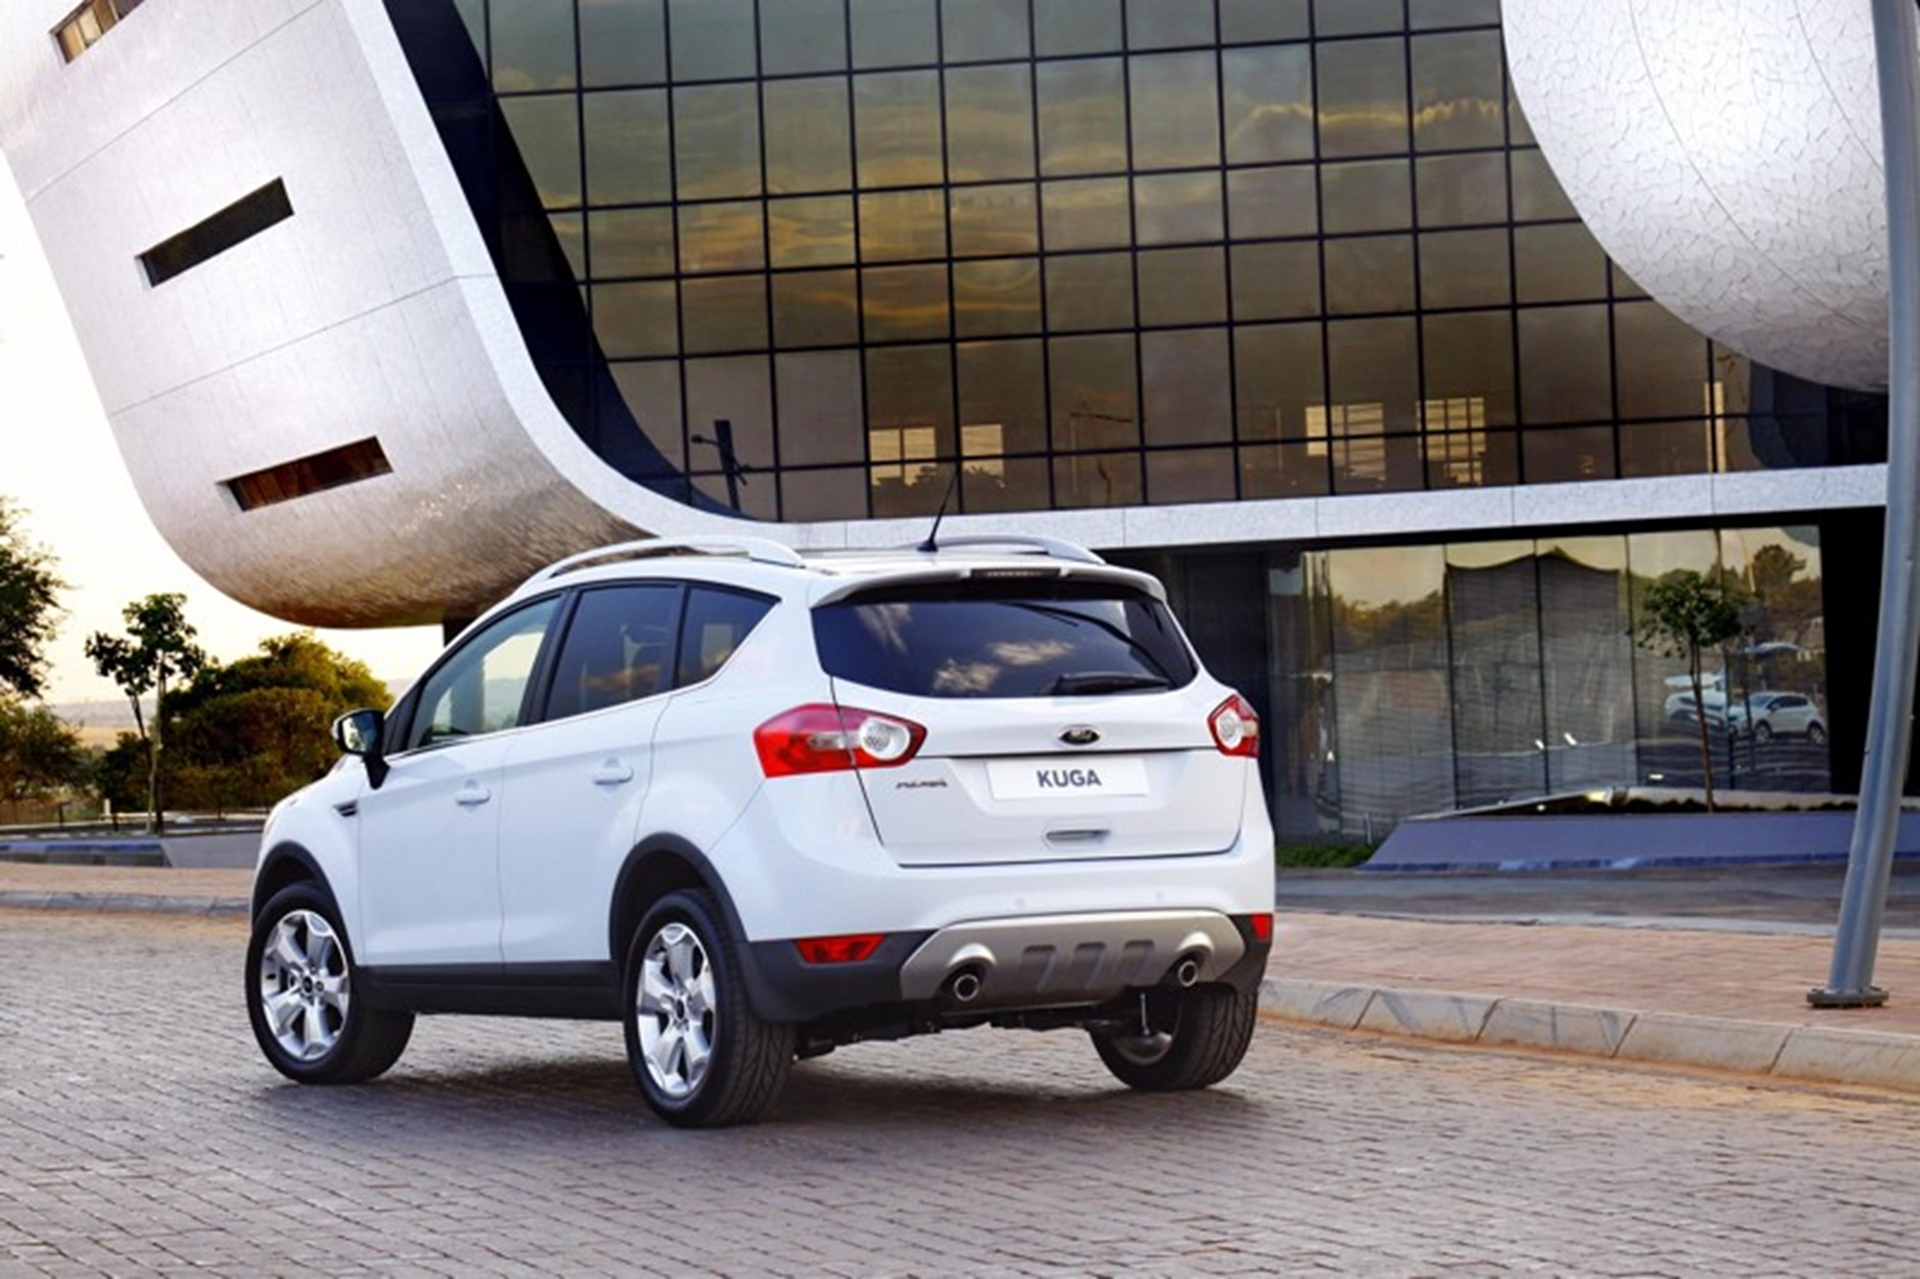 Ford Kuga Rear View